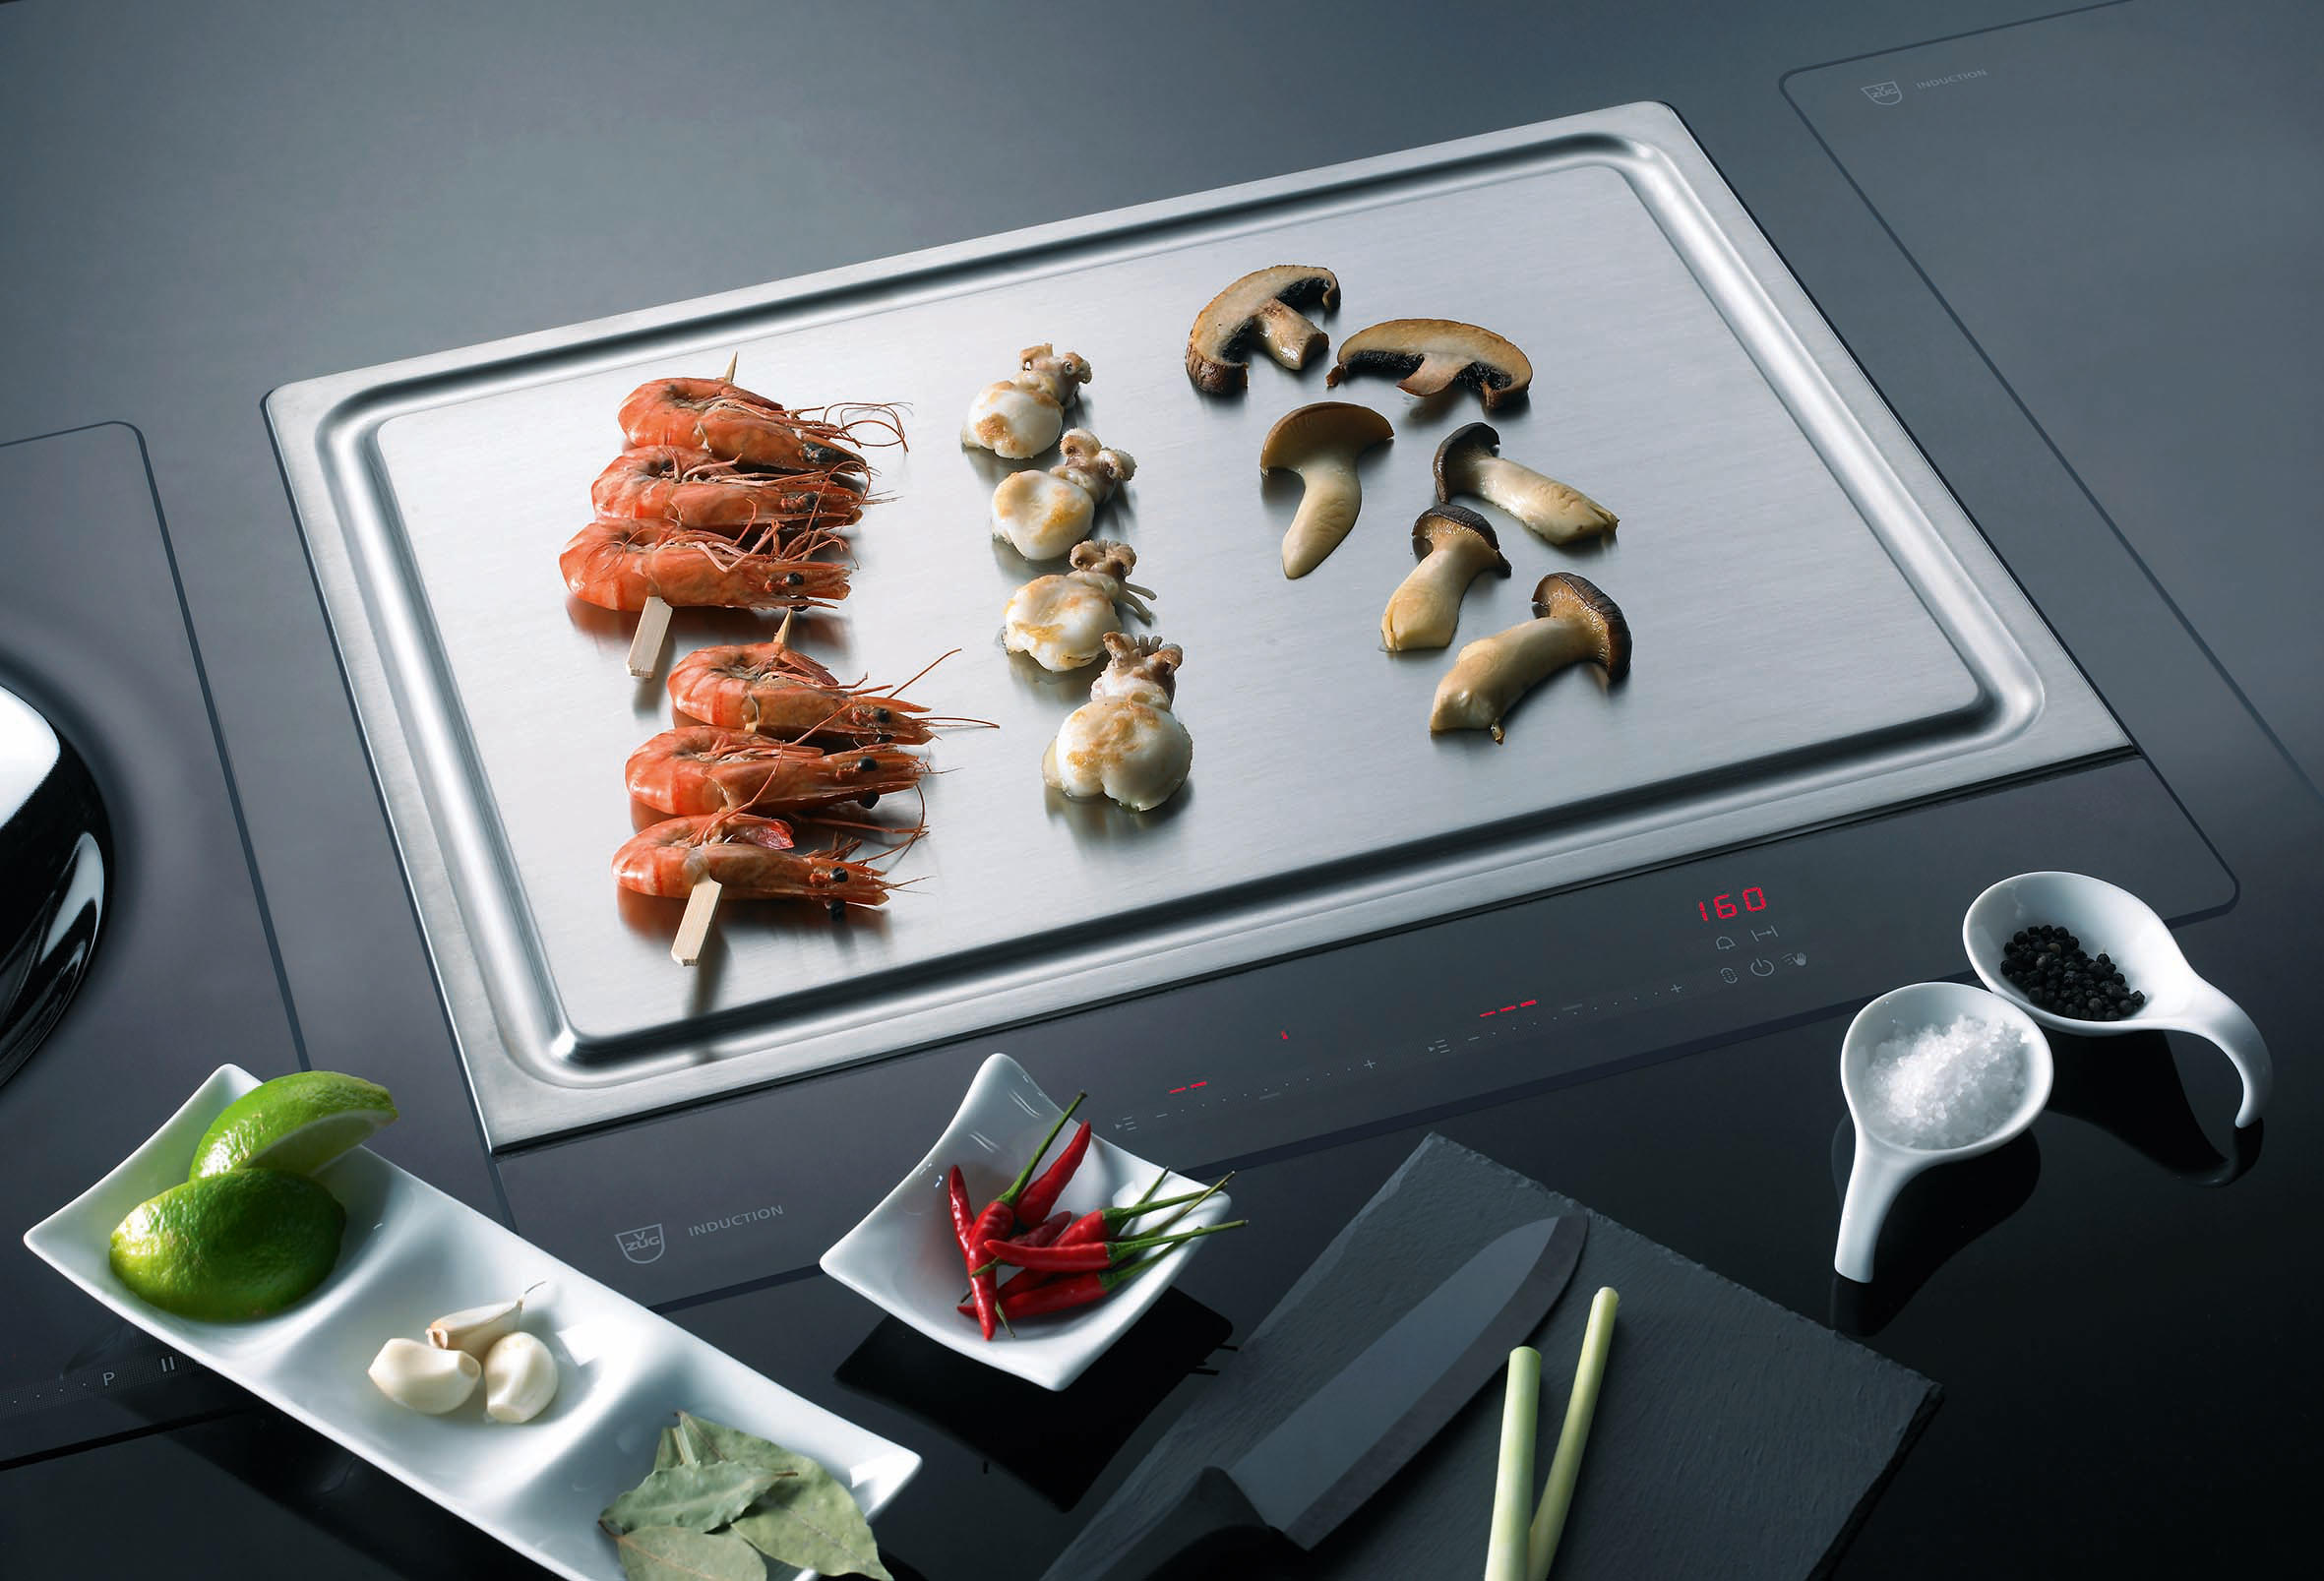 teppan yaki gk16tiys 1f slider hobs from v zug architonic. Black Bedroom Furniture Sets. Home Design Ideas